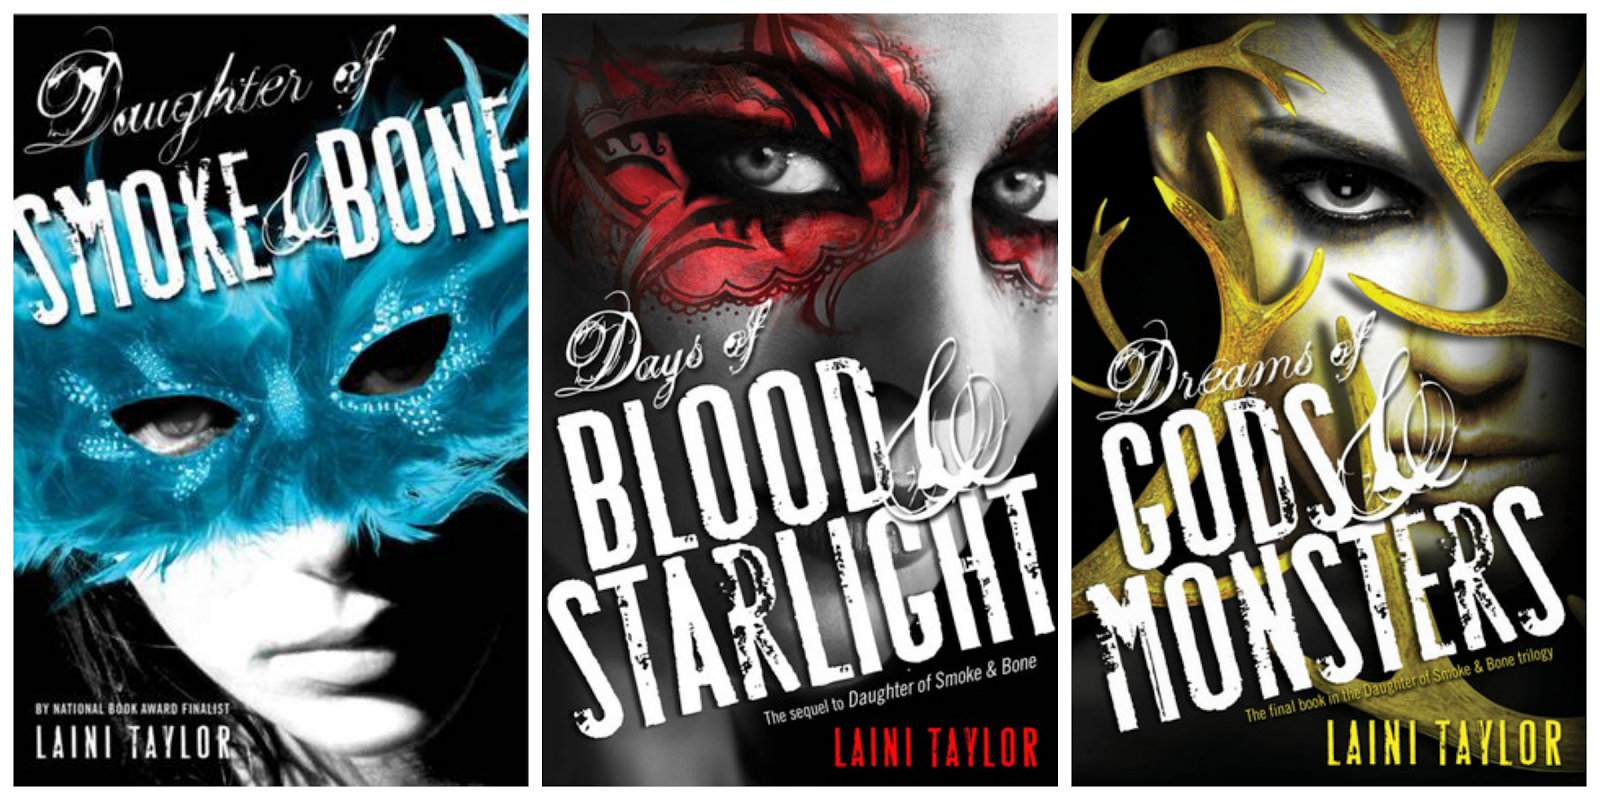 Daughter of Smoke & Bone trilogy book covers